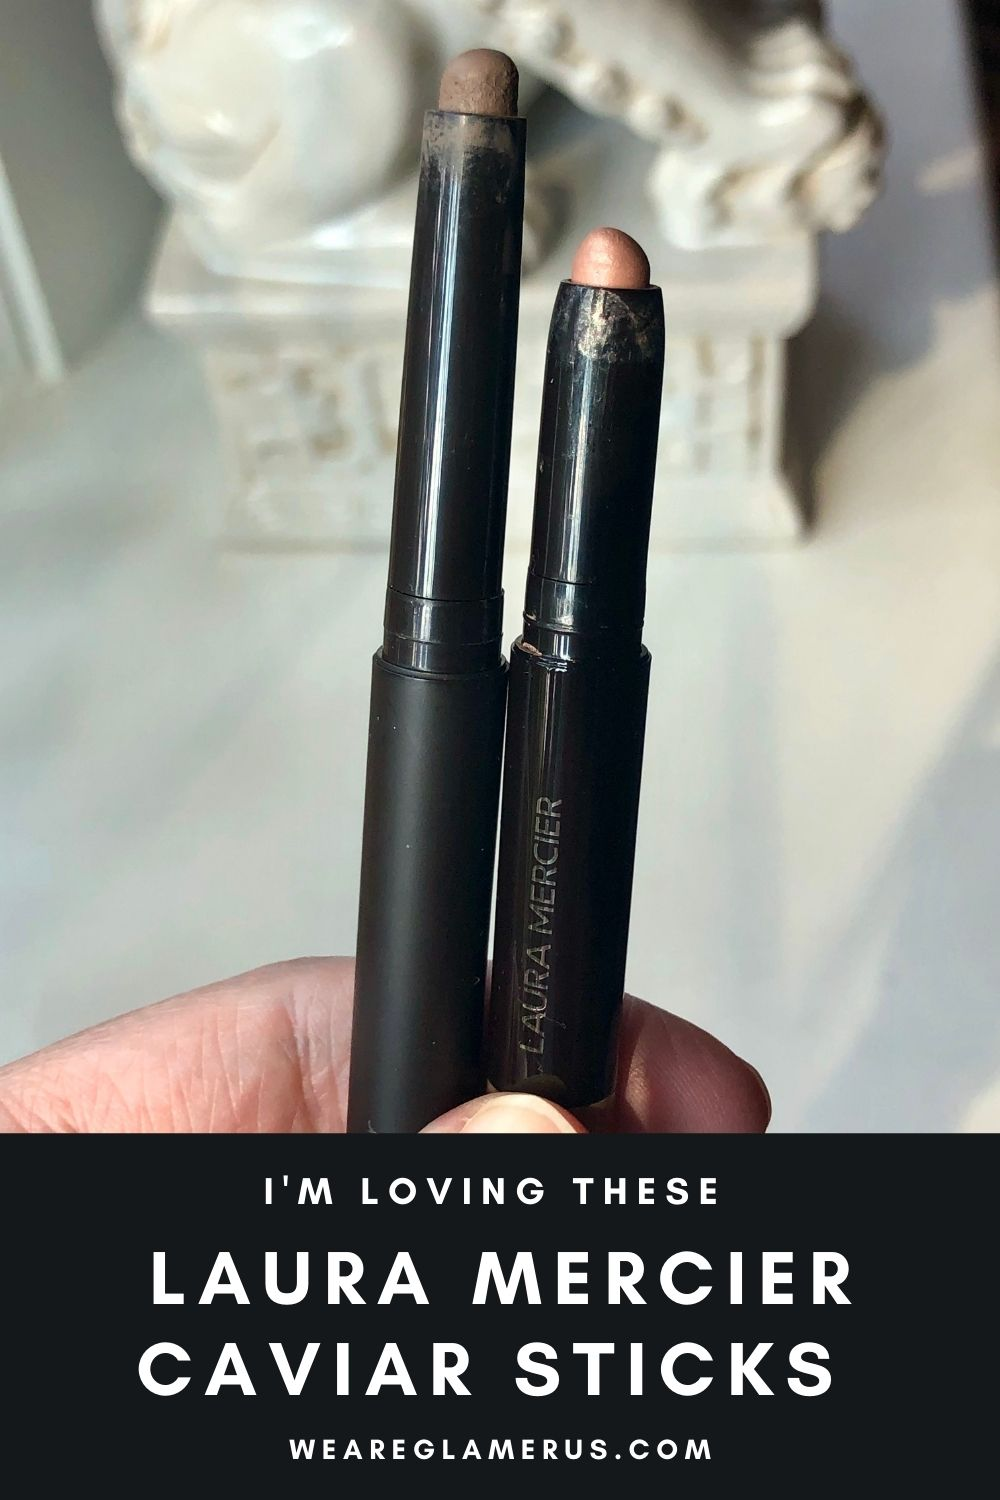 I'm sharing my favorite shades from the Laura Mercier Caviar Stick line in today's post!